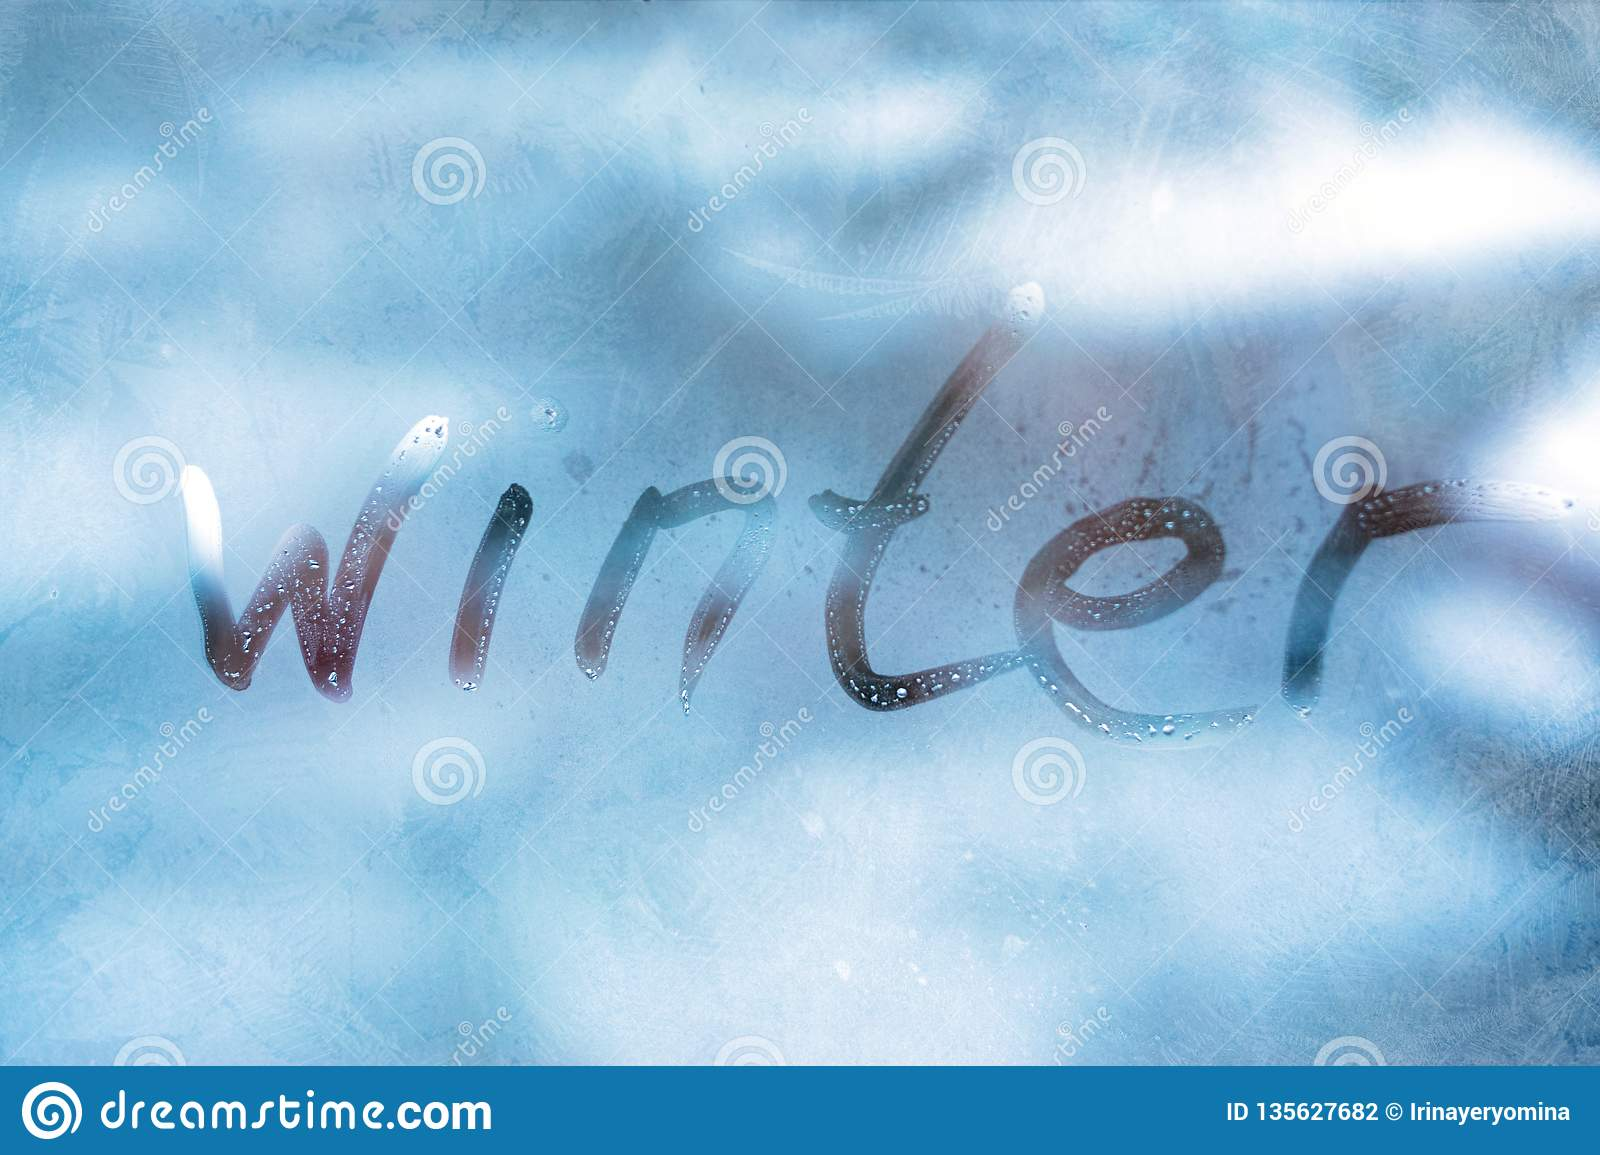 WINTER cold weather concept. Inscription word WINTER on the glass window with frozen patterns